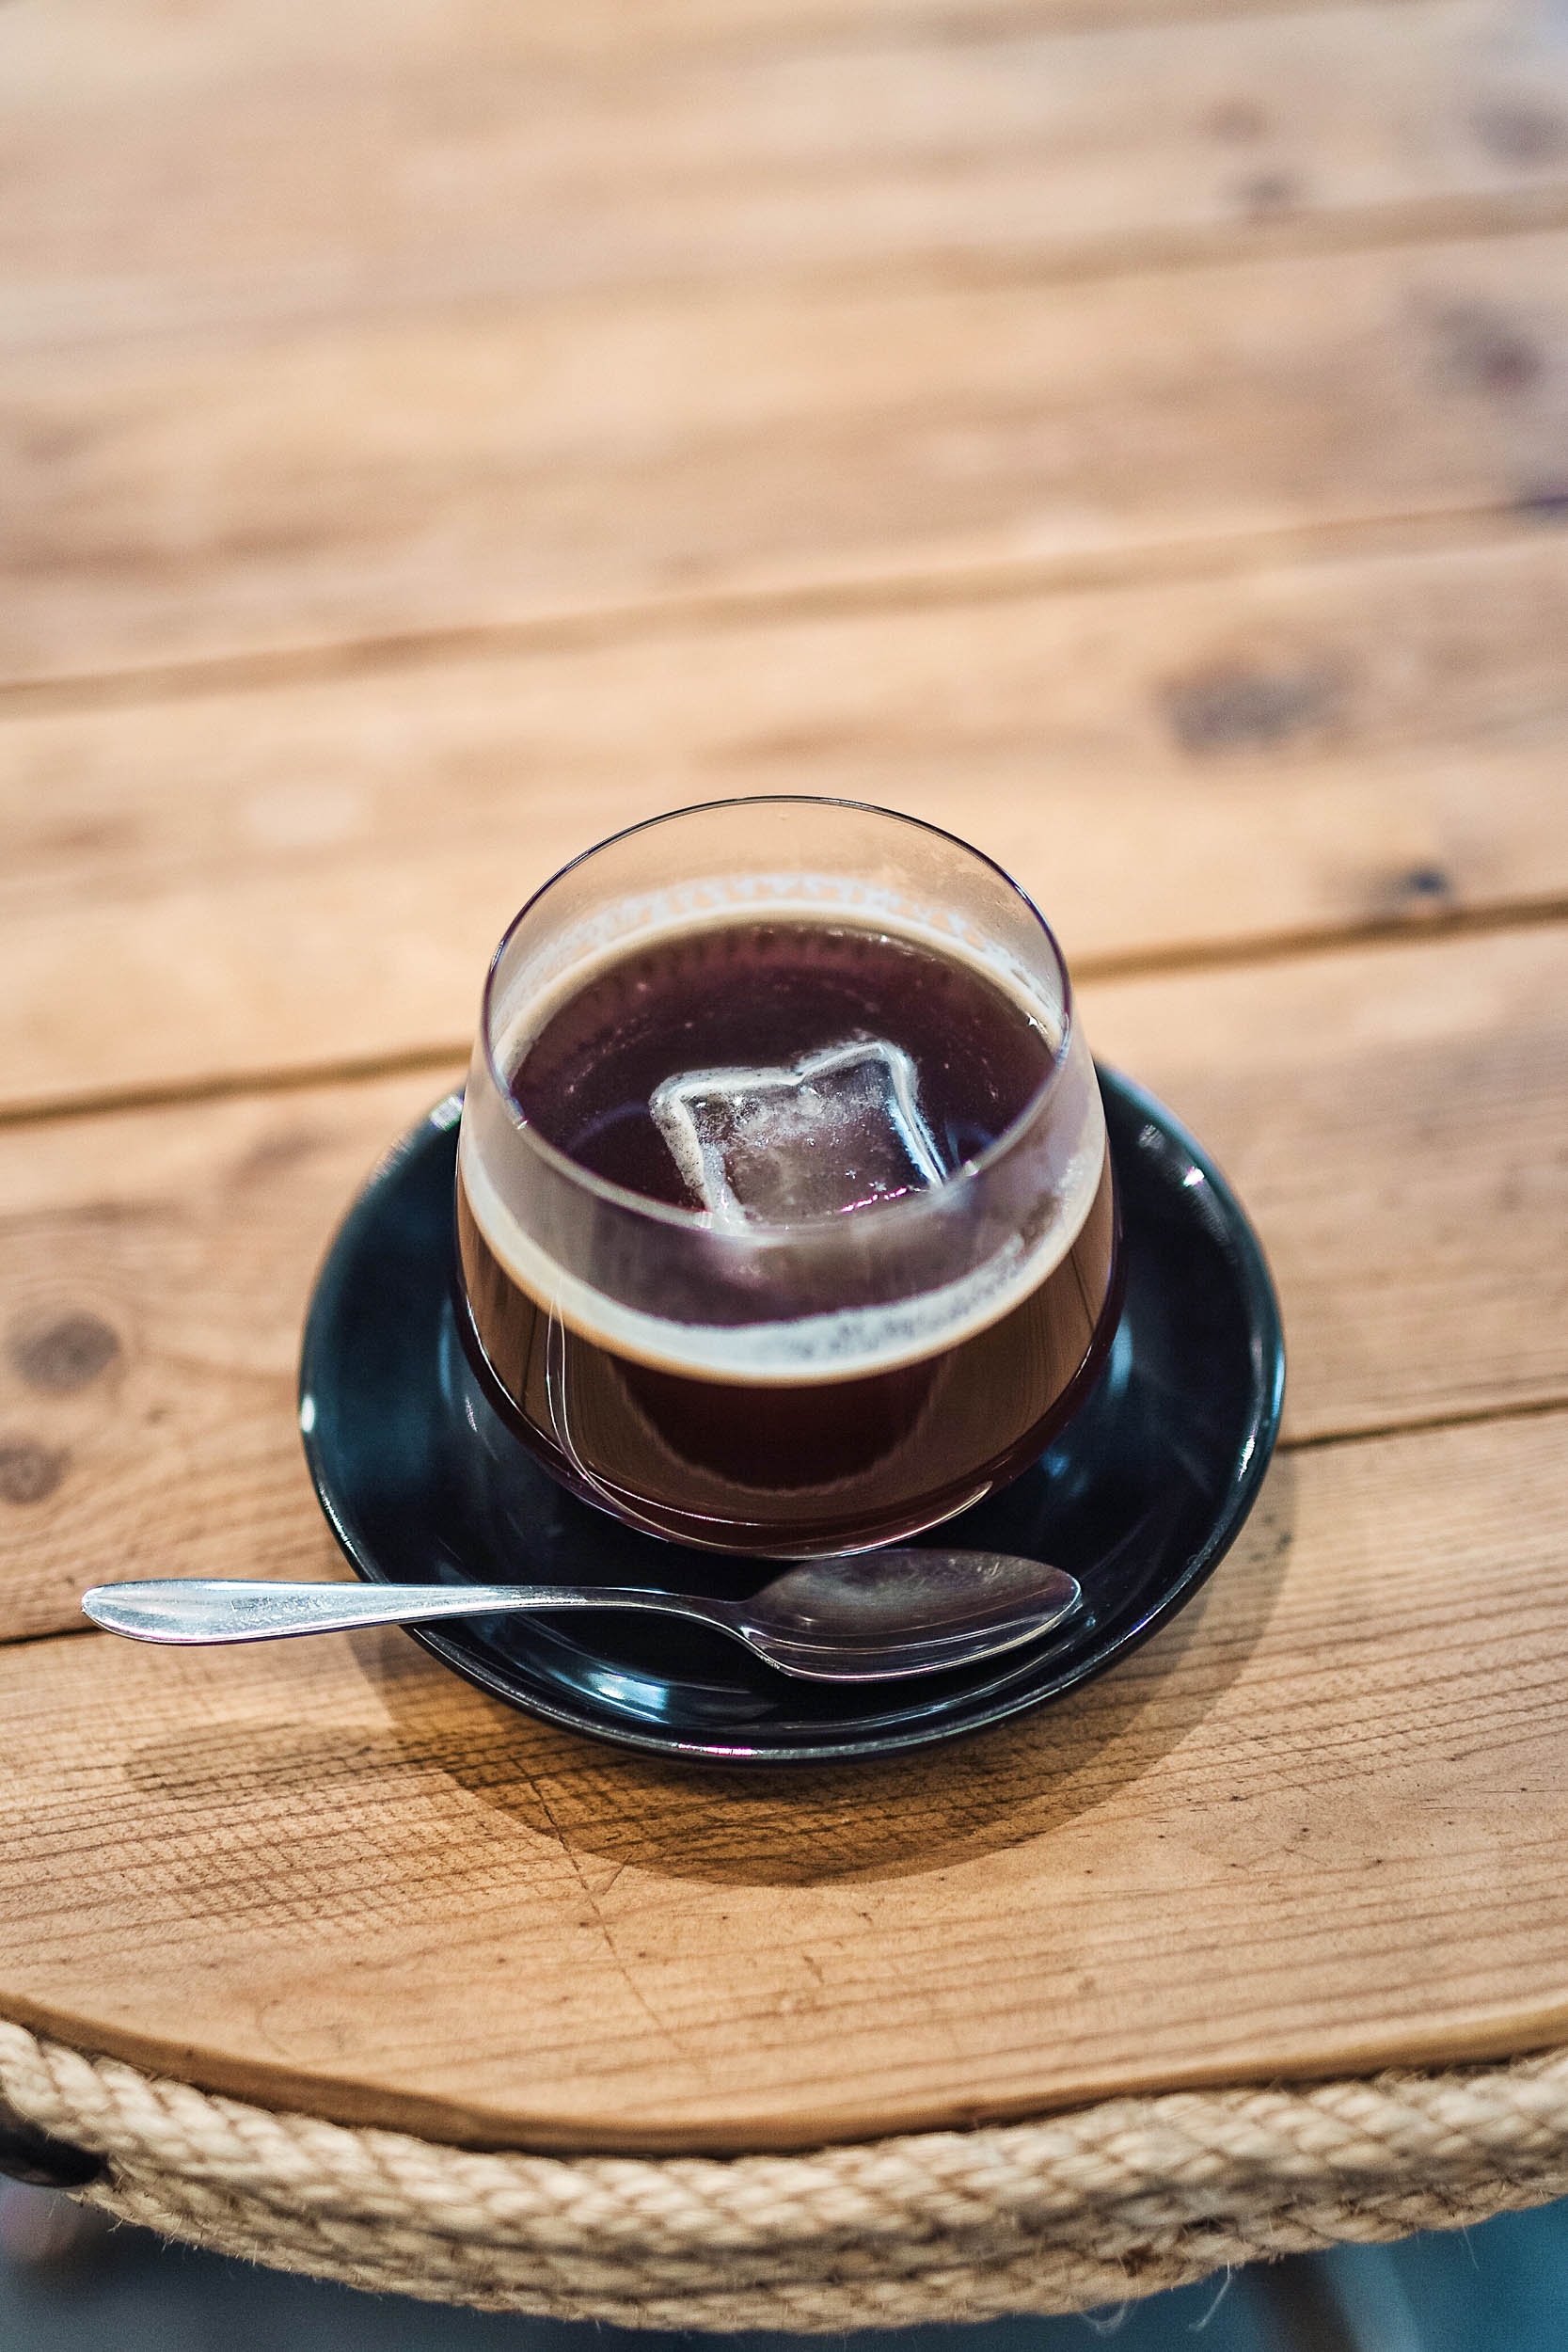 Iced coffee at Fabrica Coffee Roasters in Lisbon, Portugal